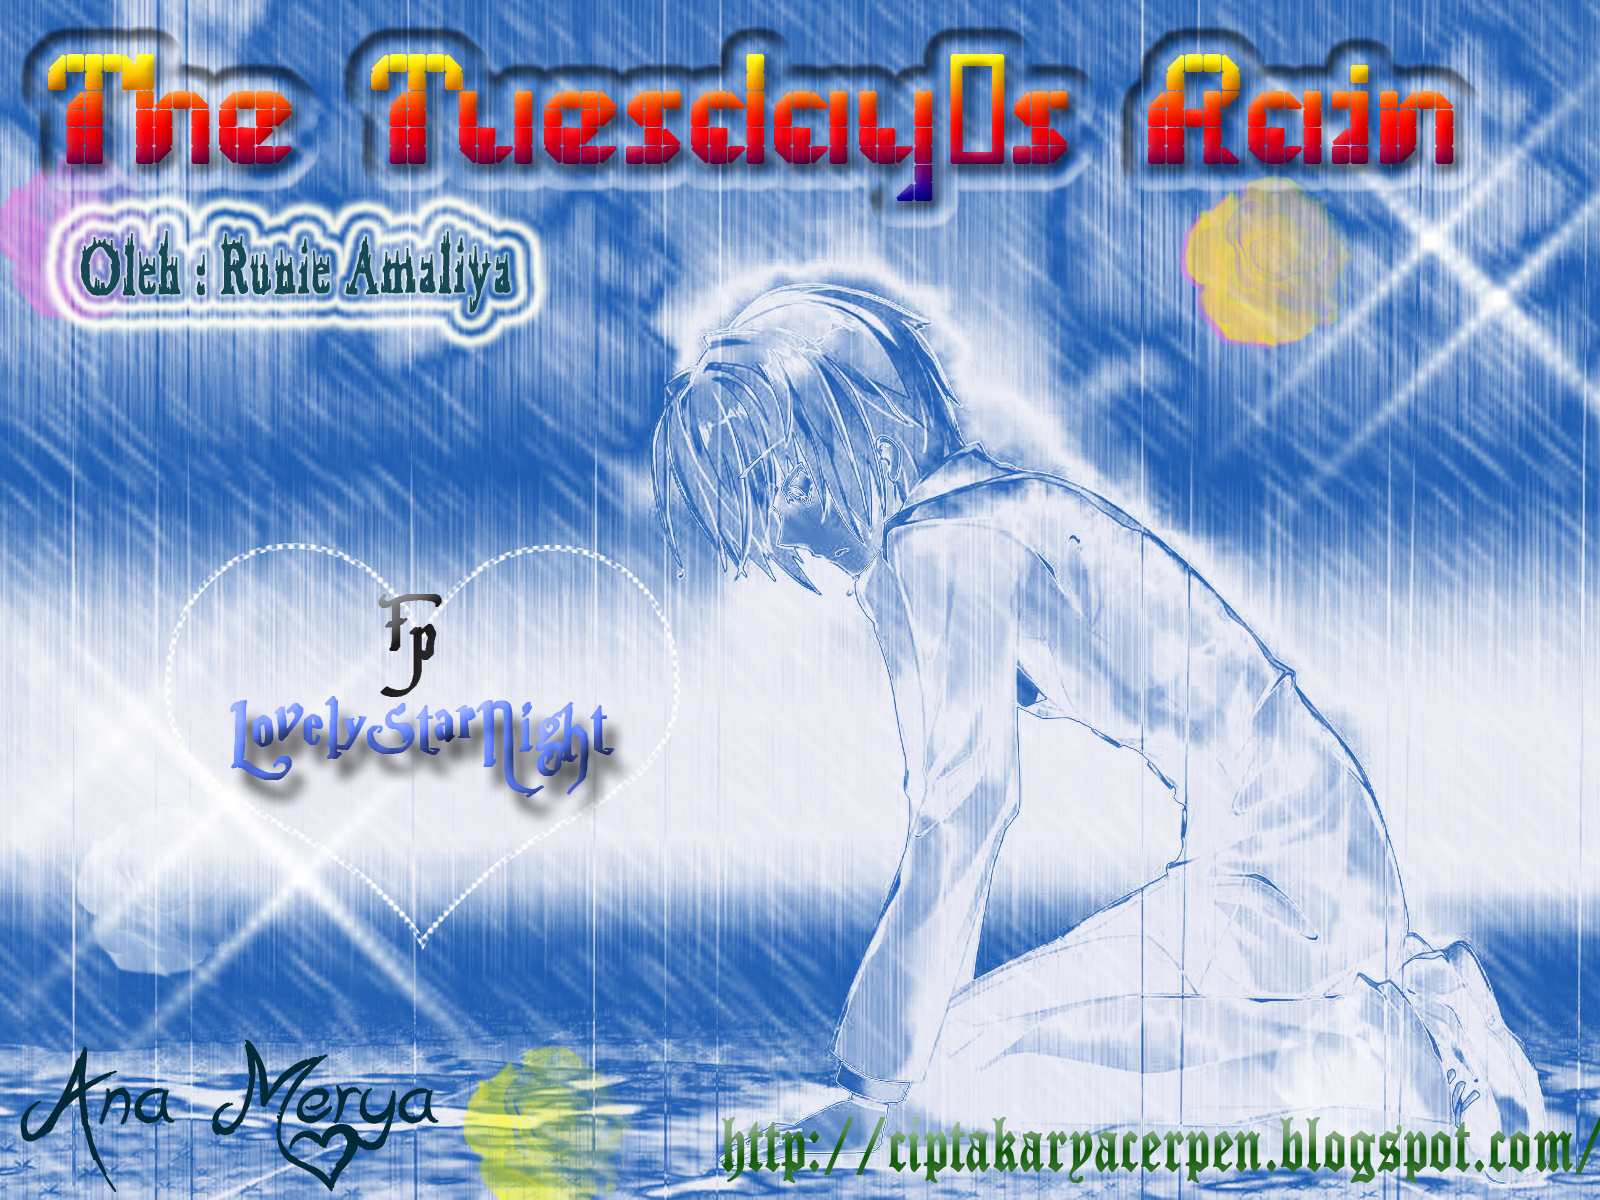 The Tuesday's Rain